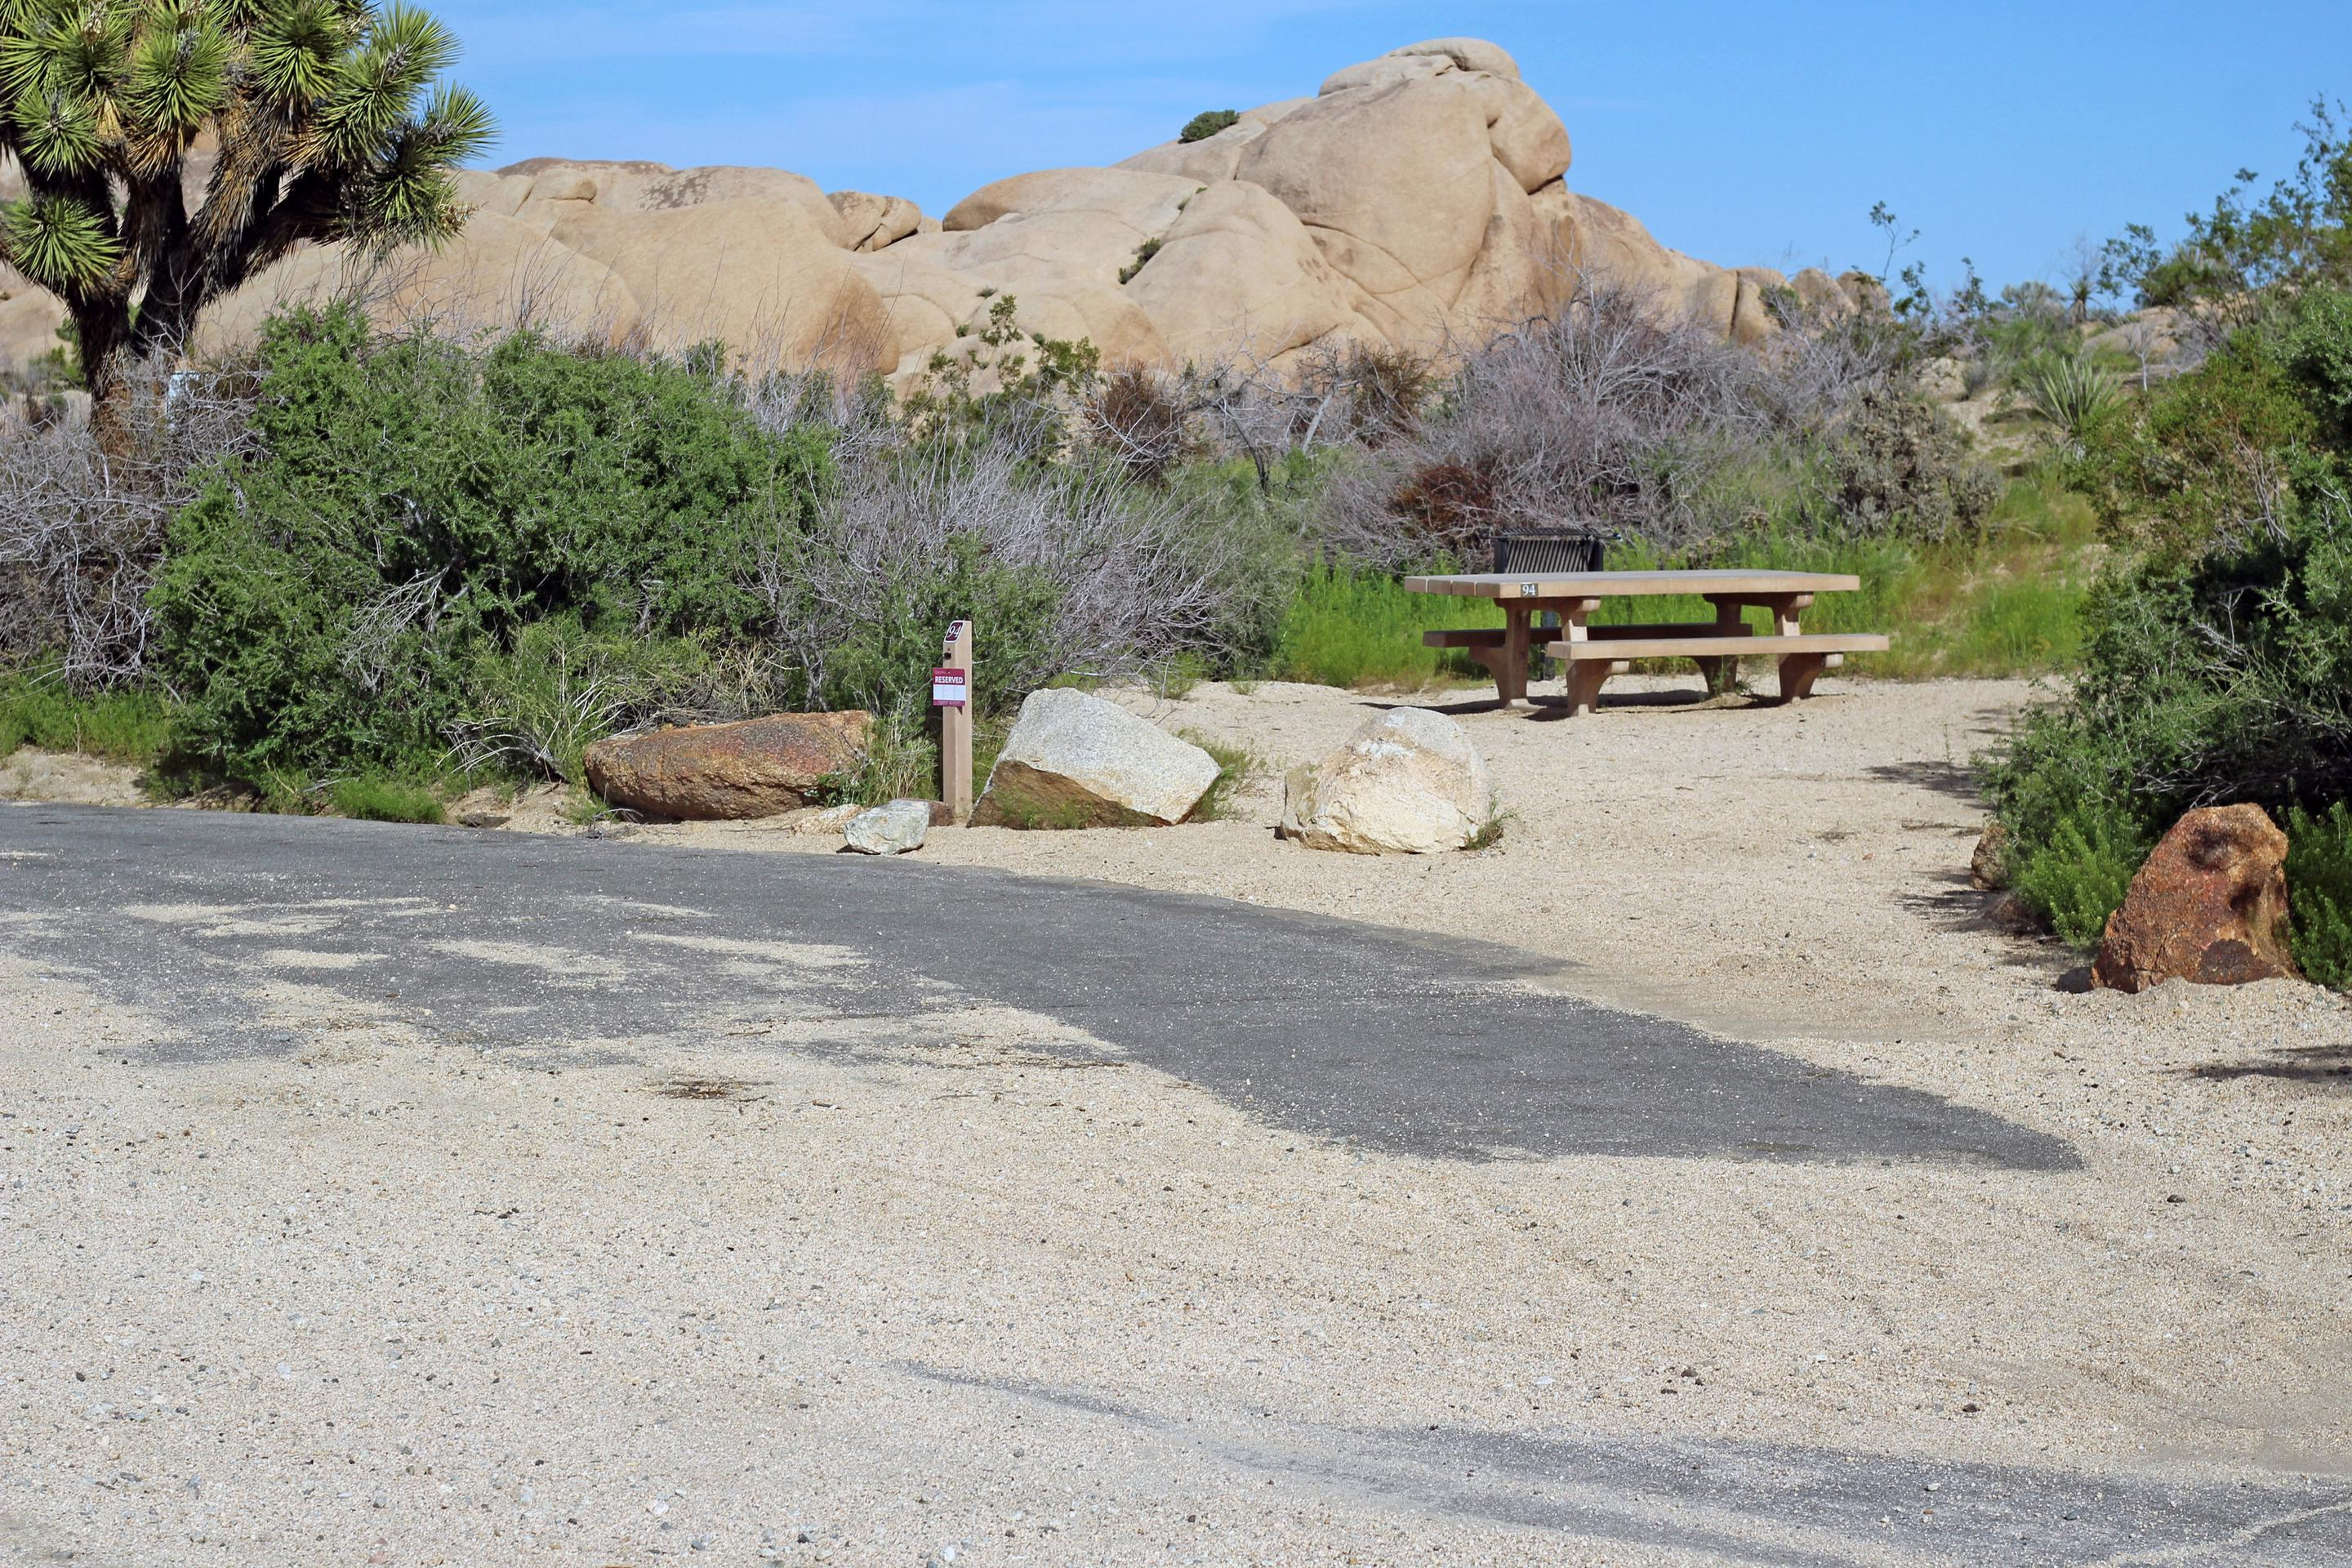 Parking for campsite. Picnic table surrounded by boulders and green plants.Parking and campsite.